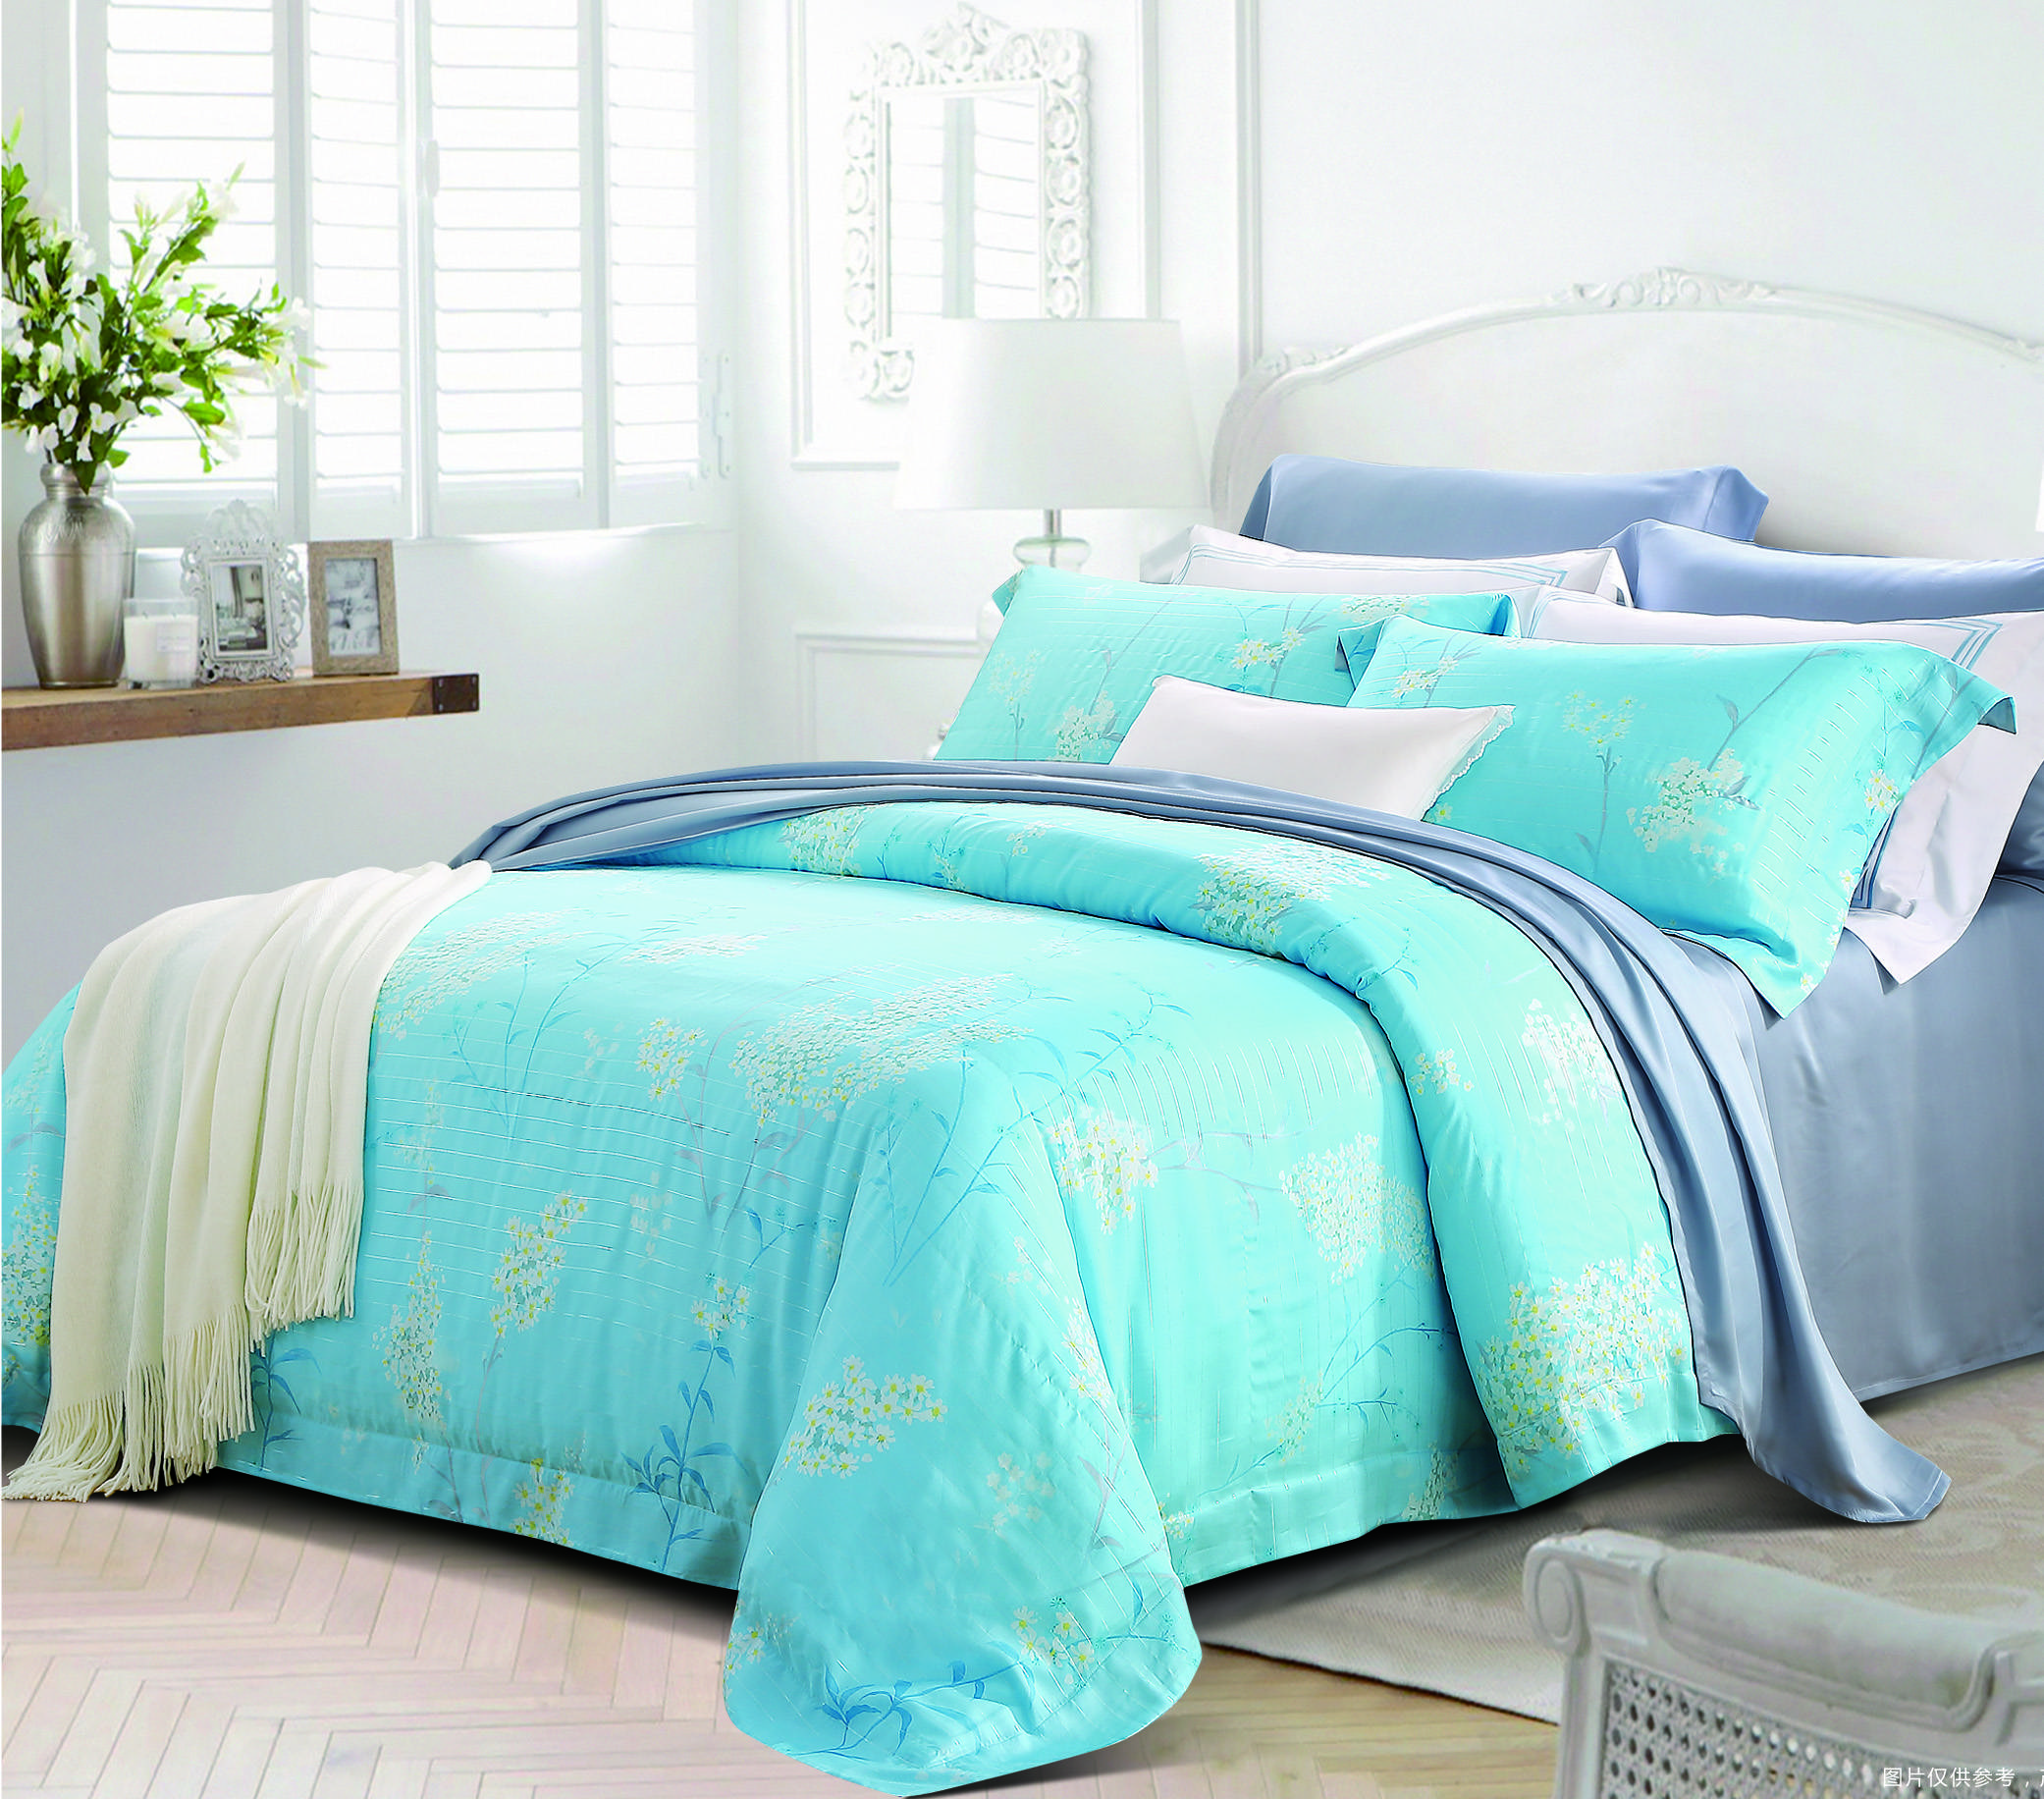 Daphne White Flowers Lyocell Filamentary Silver Blend Bedding Other Material Printed image8